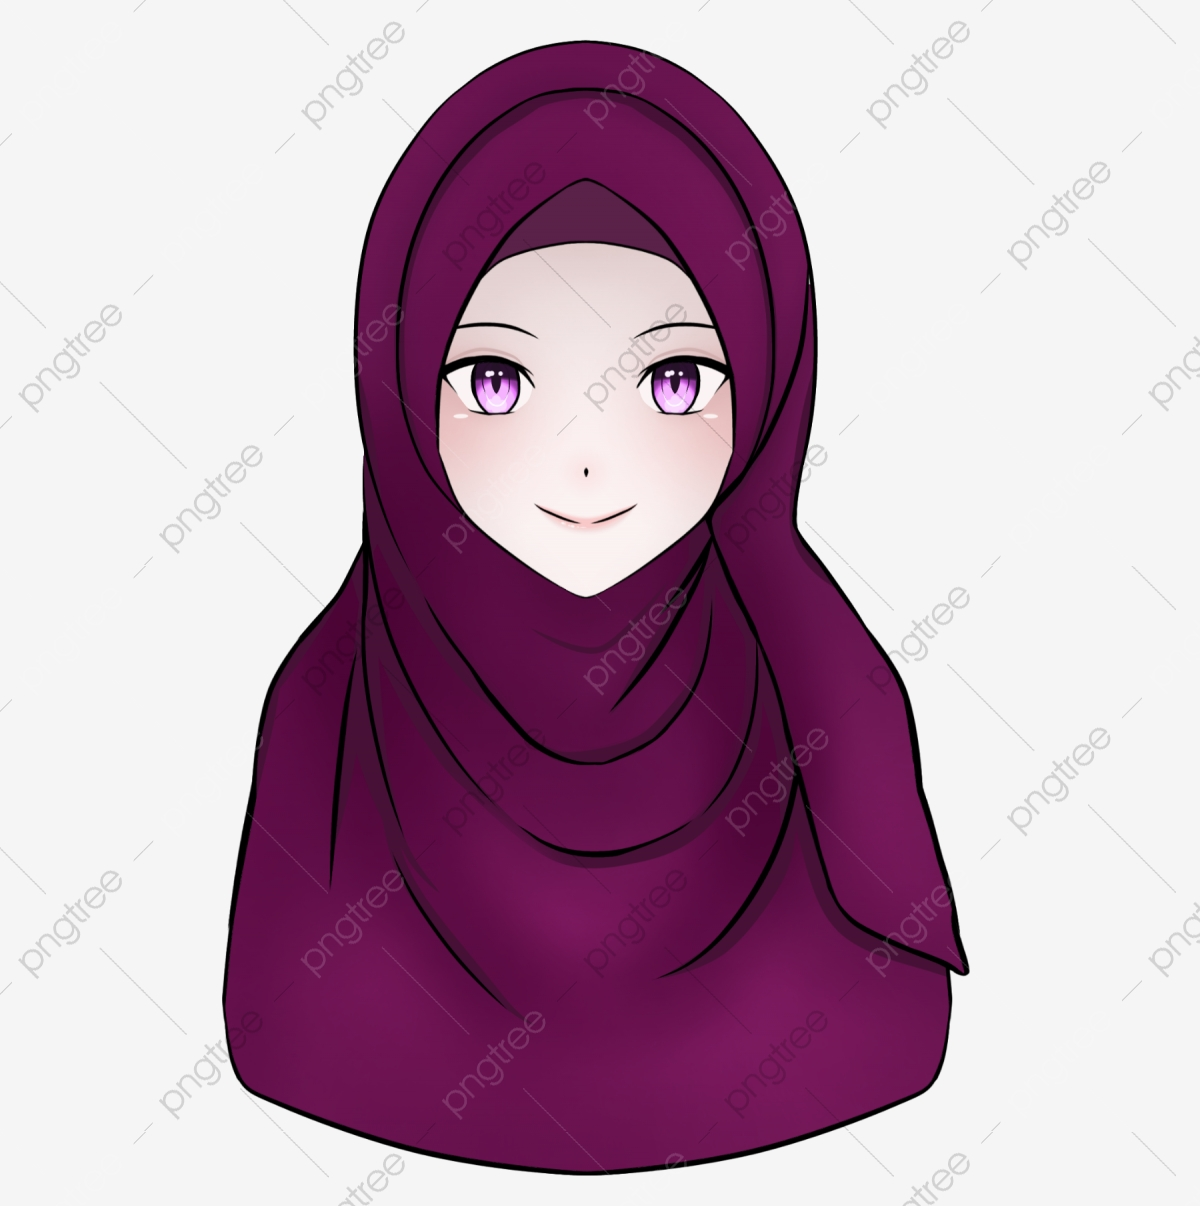 Cartoon Muslimah Png Images Vector And Psd Files Free Download On Pngtree